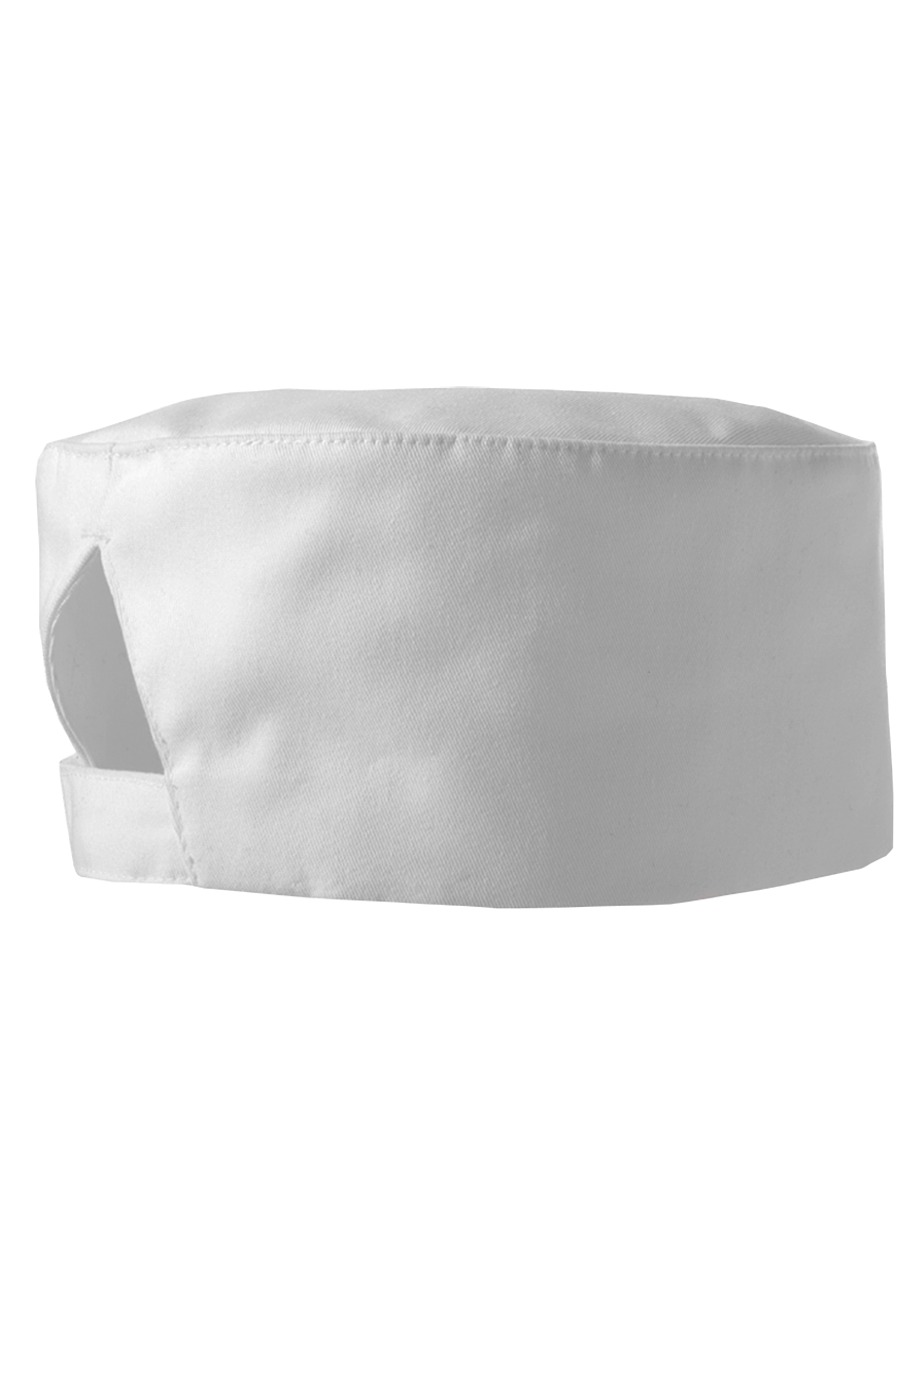 Edwards Garment HT04 - Beanie With Velcro Clousure